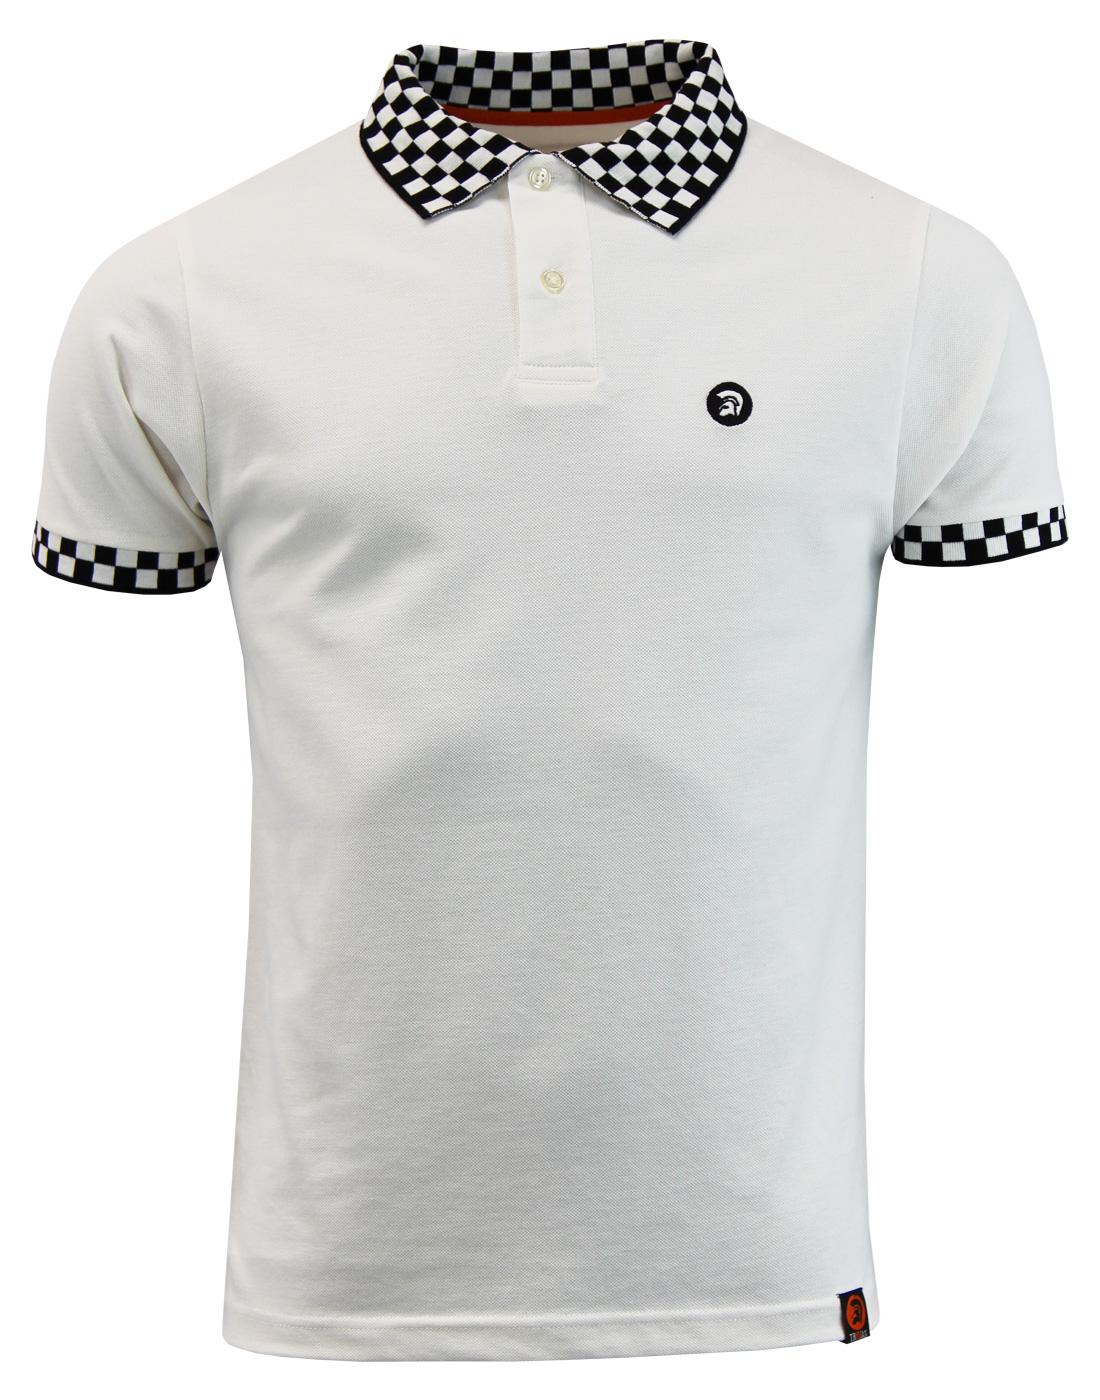 TROJAN RECORDS Ska Mod Revival Checkerboard Polo E